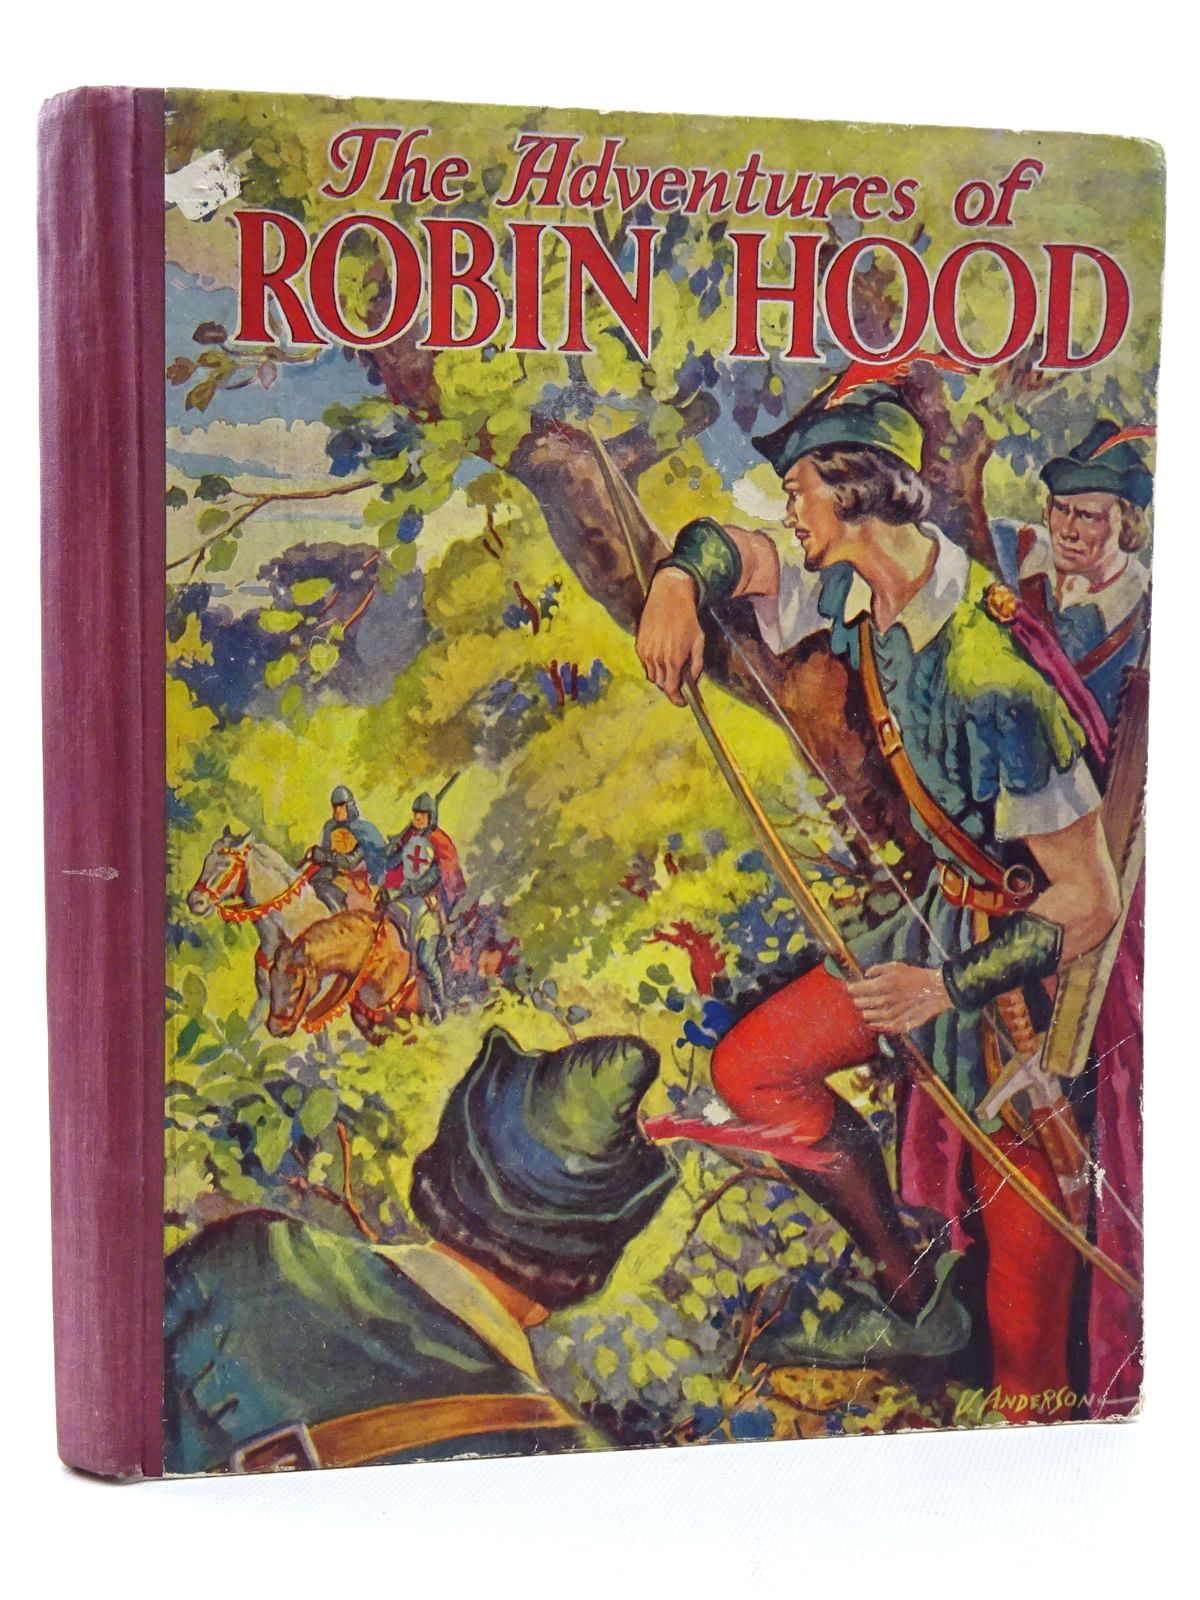 Photo of THE ADVENTURES OF ROBIN HOOD published by Collins Clear-Type Press (STOCK CODE: 1816002)  for sale by Stella & Rose's Books